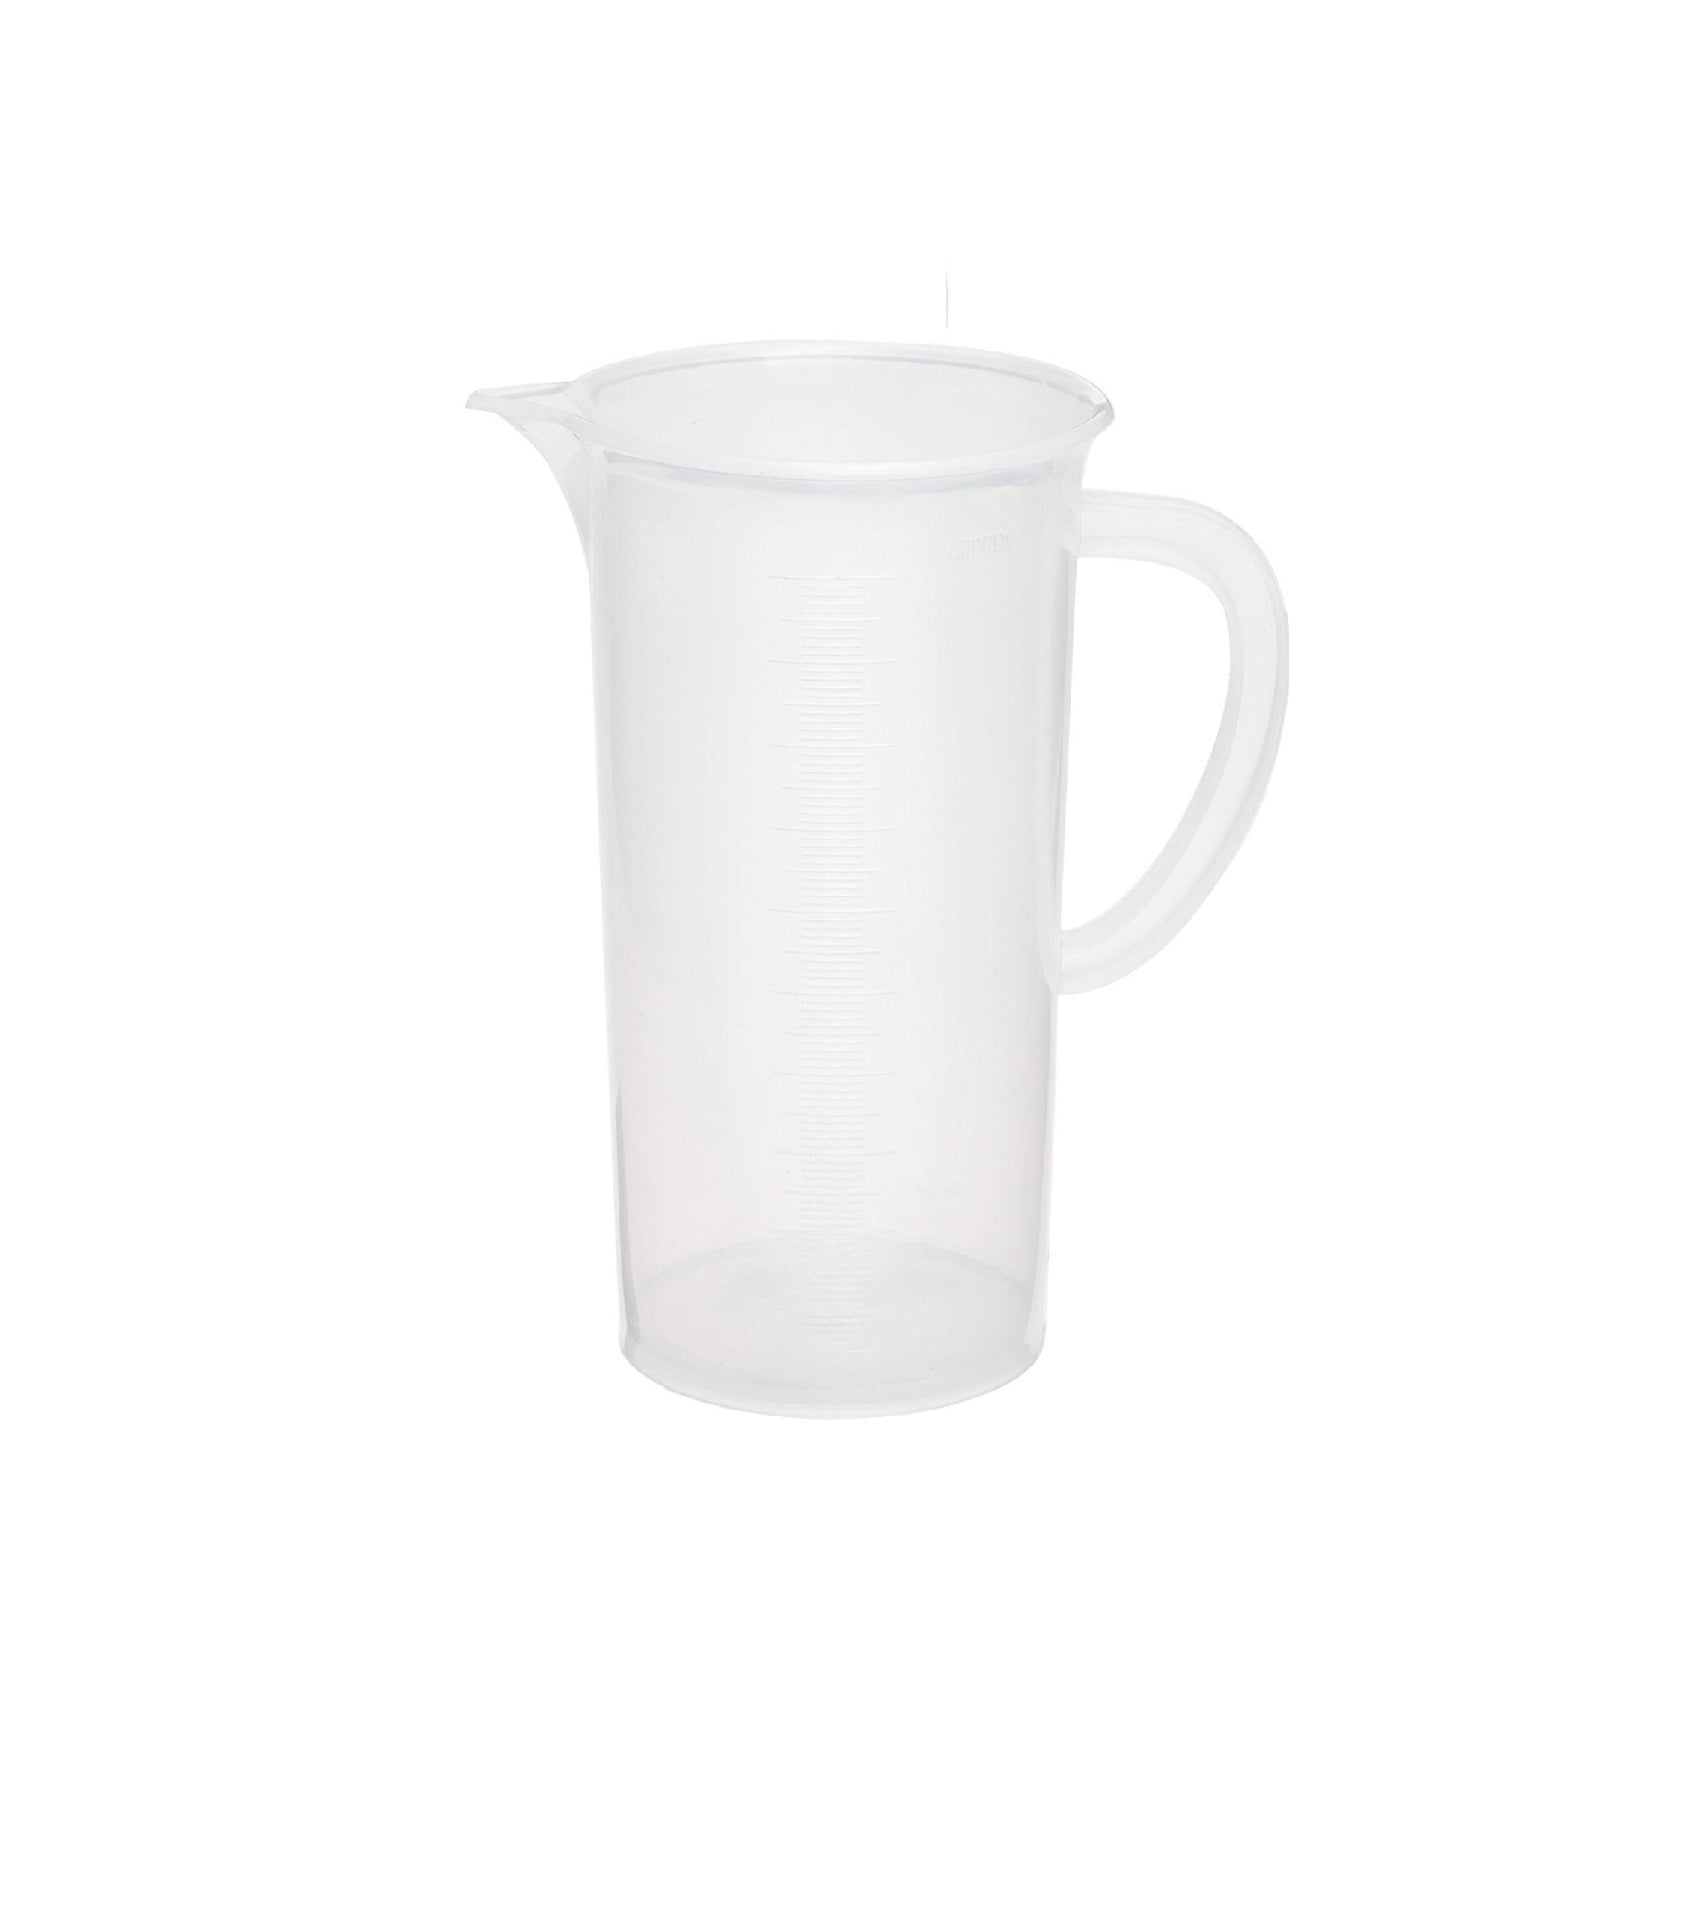 AA MEASURING JUG 500ML